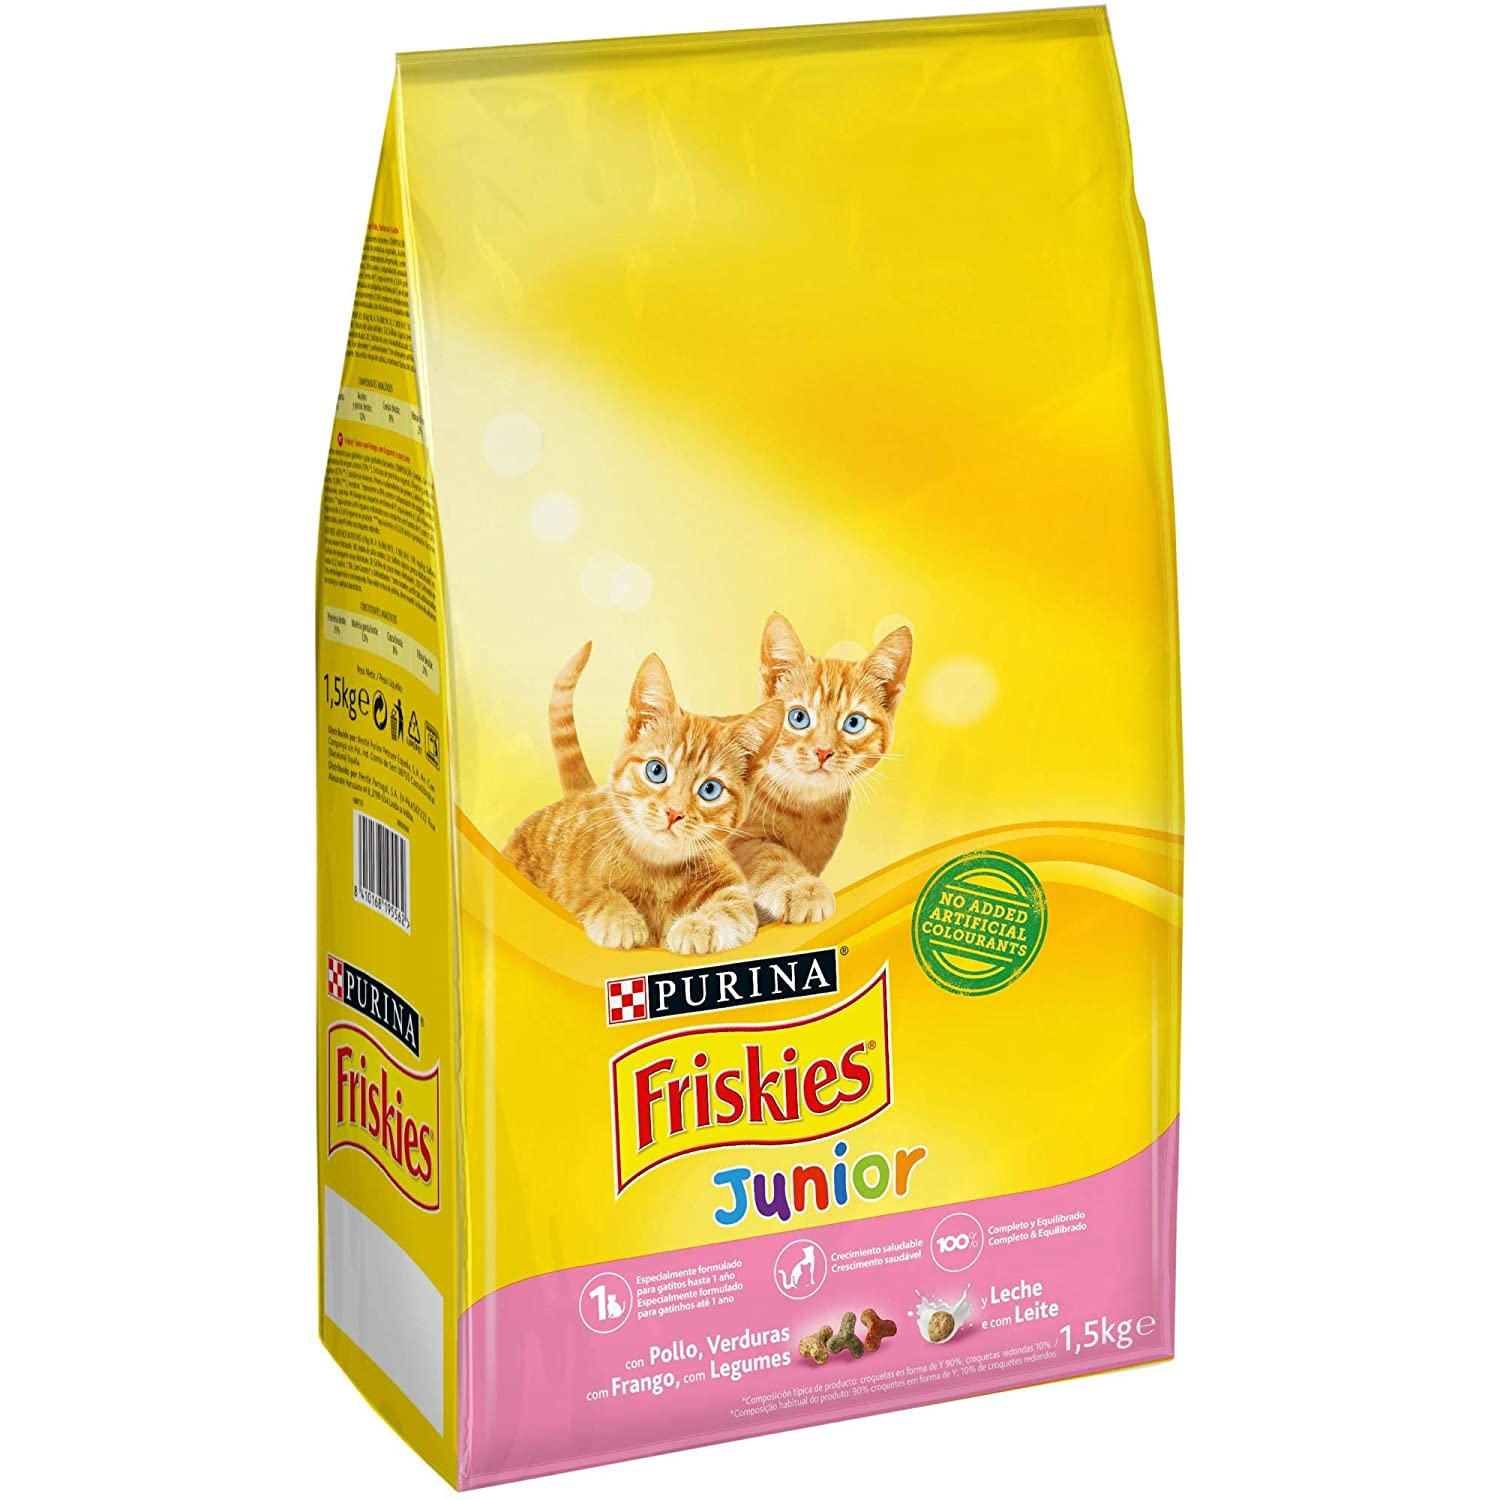 Purina Friskies Junior Pienso para Gato hasta 1 año 1,5 Kg: Amazon.es: Amazon Pantry